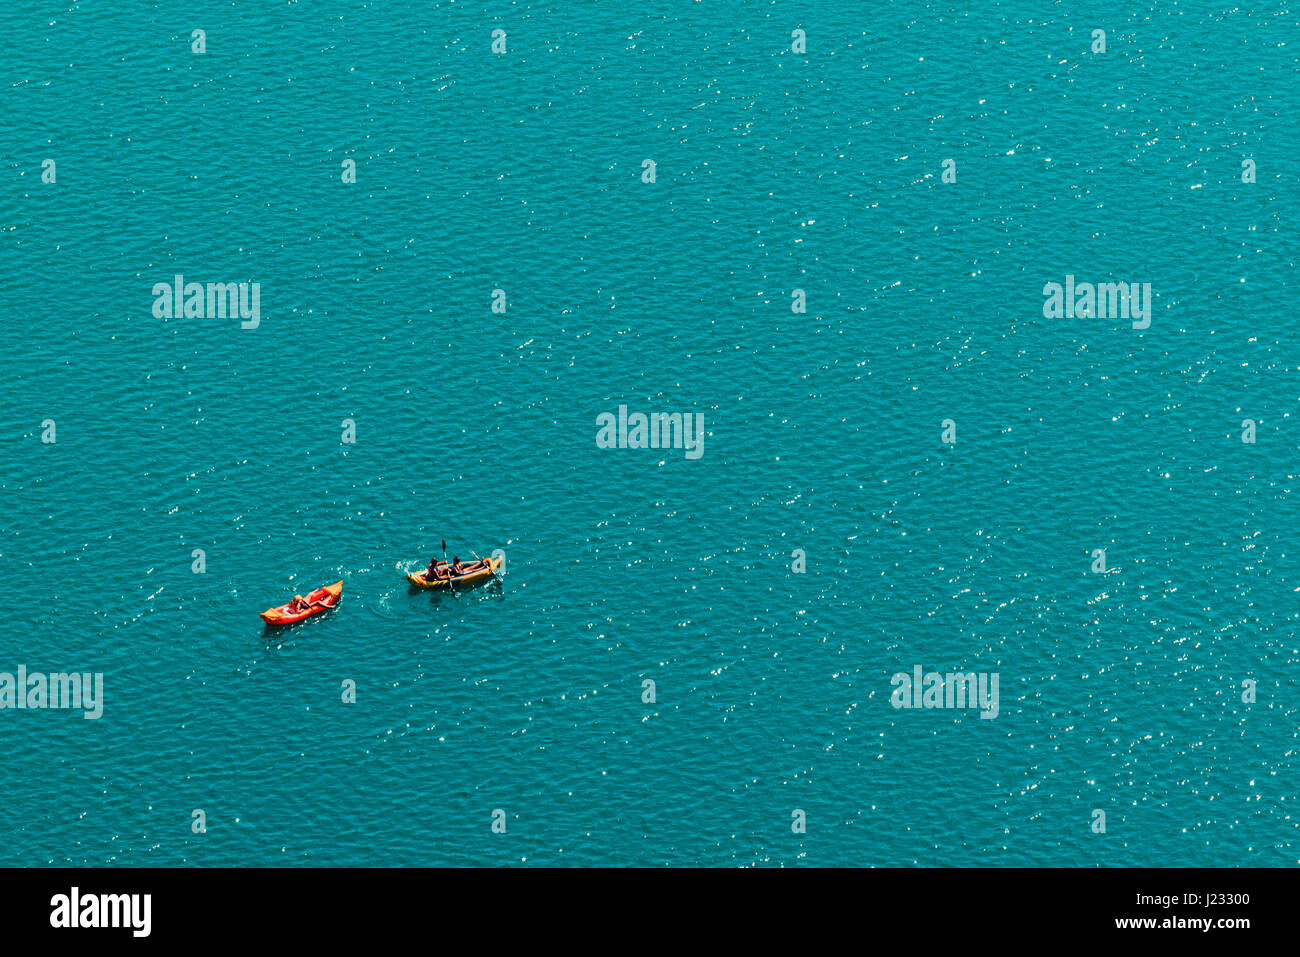 Unrecognizable people enjoying hot summer afternoon in boats on lake Bled, aerial view of leisure and recreational - Stock Image